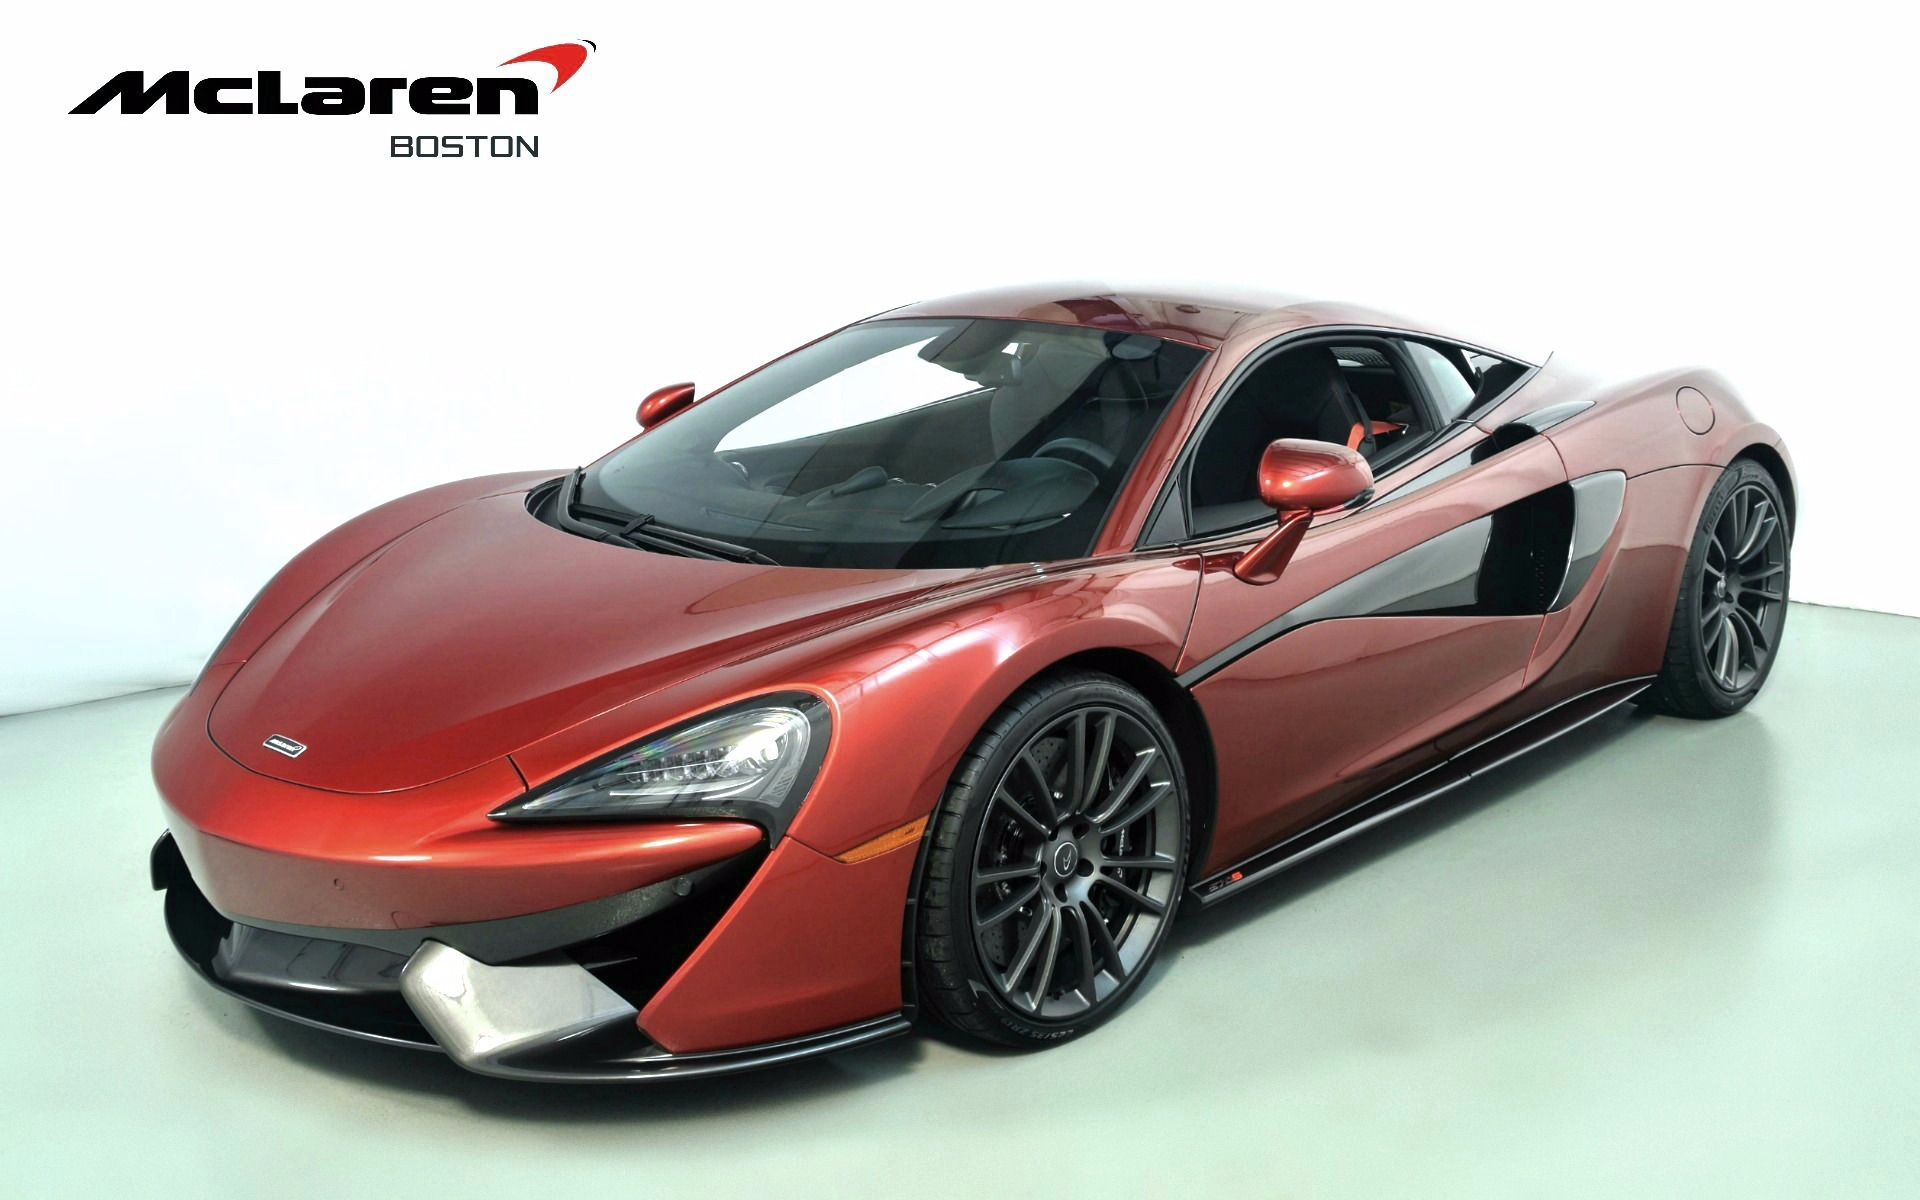 2017 Mclaren P1 Price >> 2017 MCLAREN 570S For Sale in Norwell, MA 002348 | Mclaren Boston